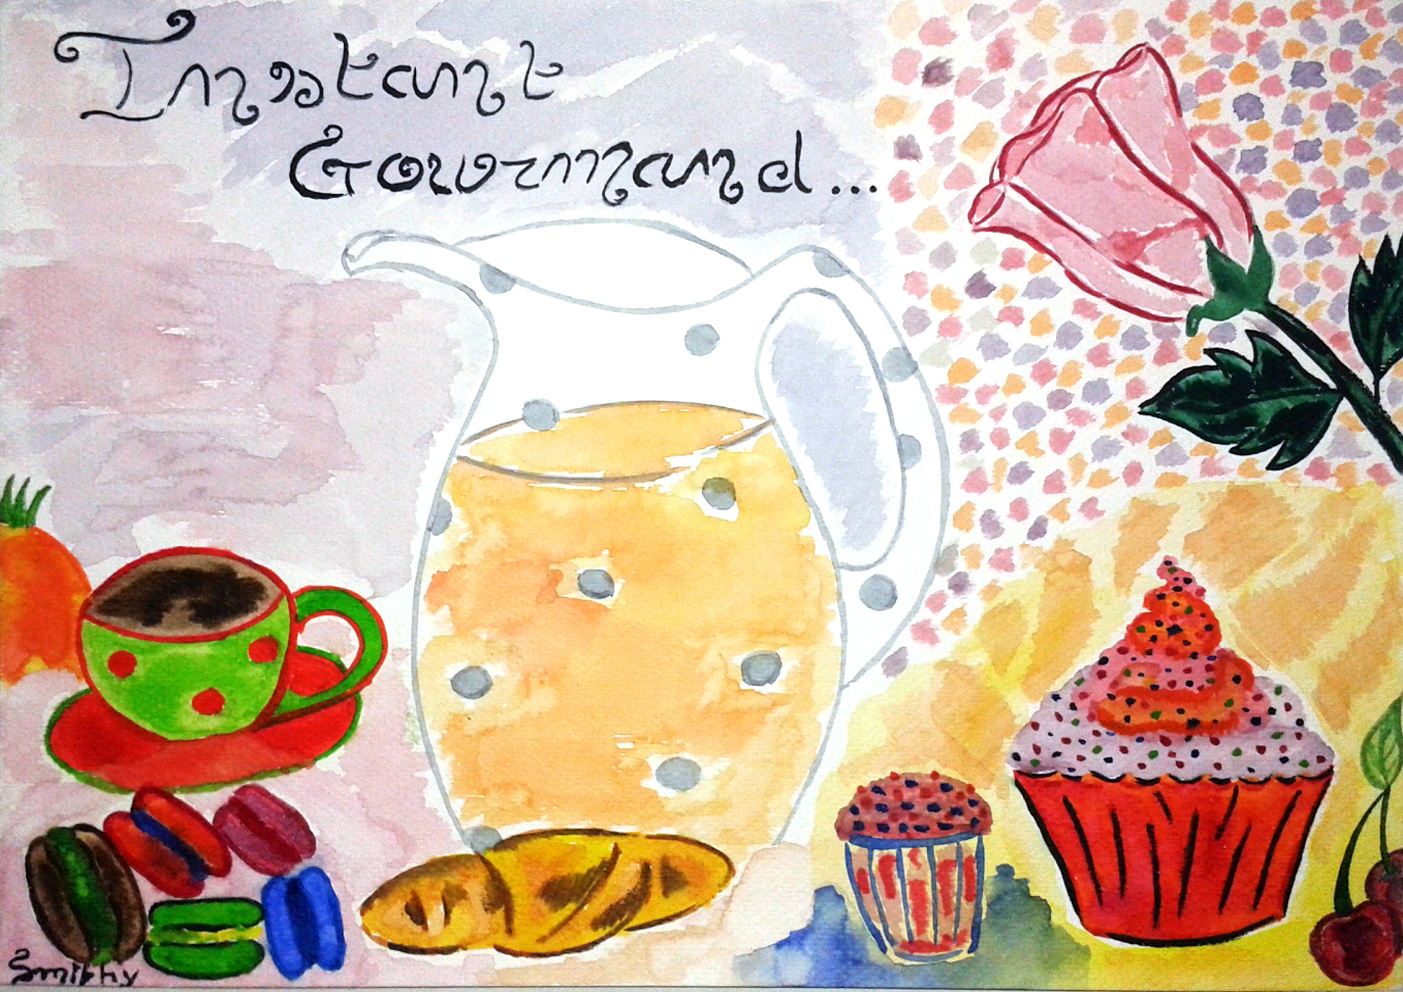 watercolor illustration: instant gourmand